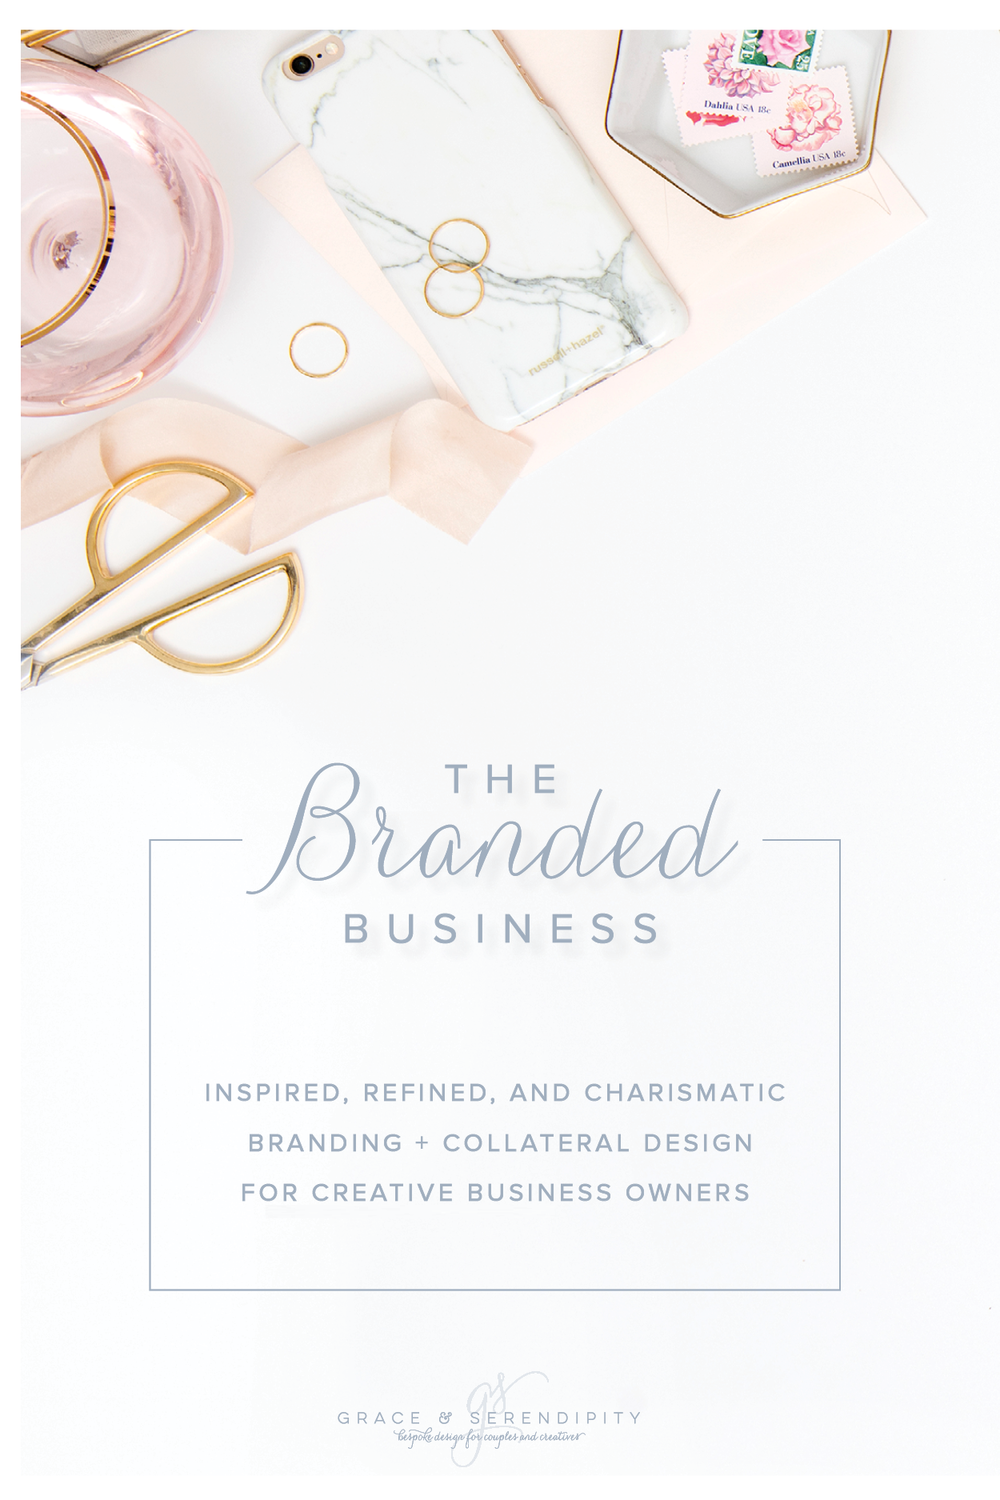 Business Branding and Collateral Design for Creative Business Owners by Grace and Serendipity